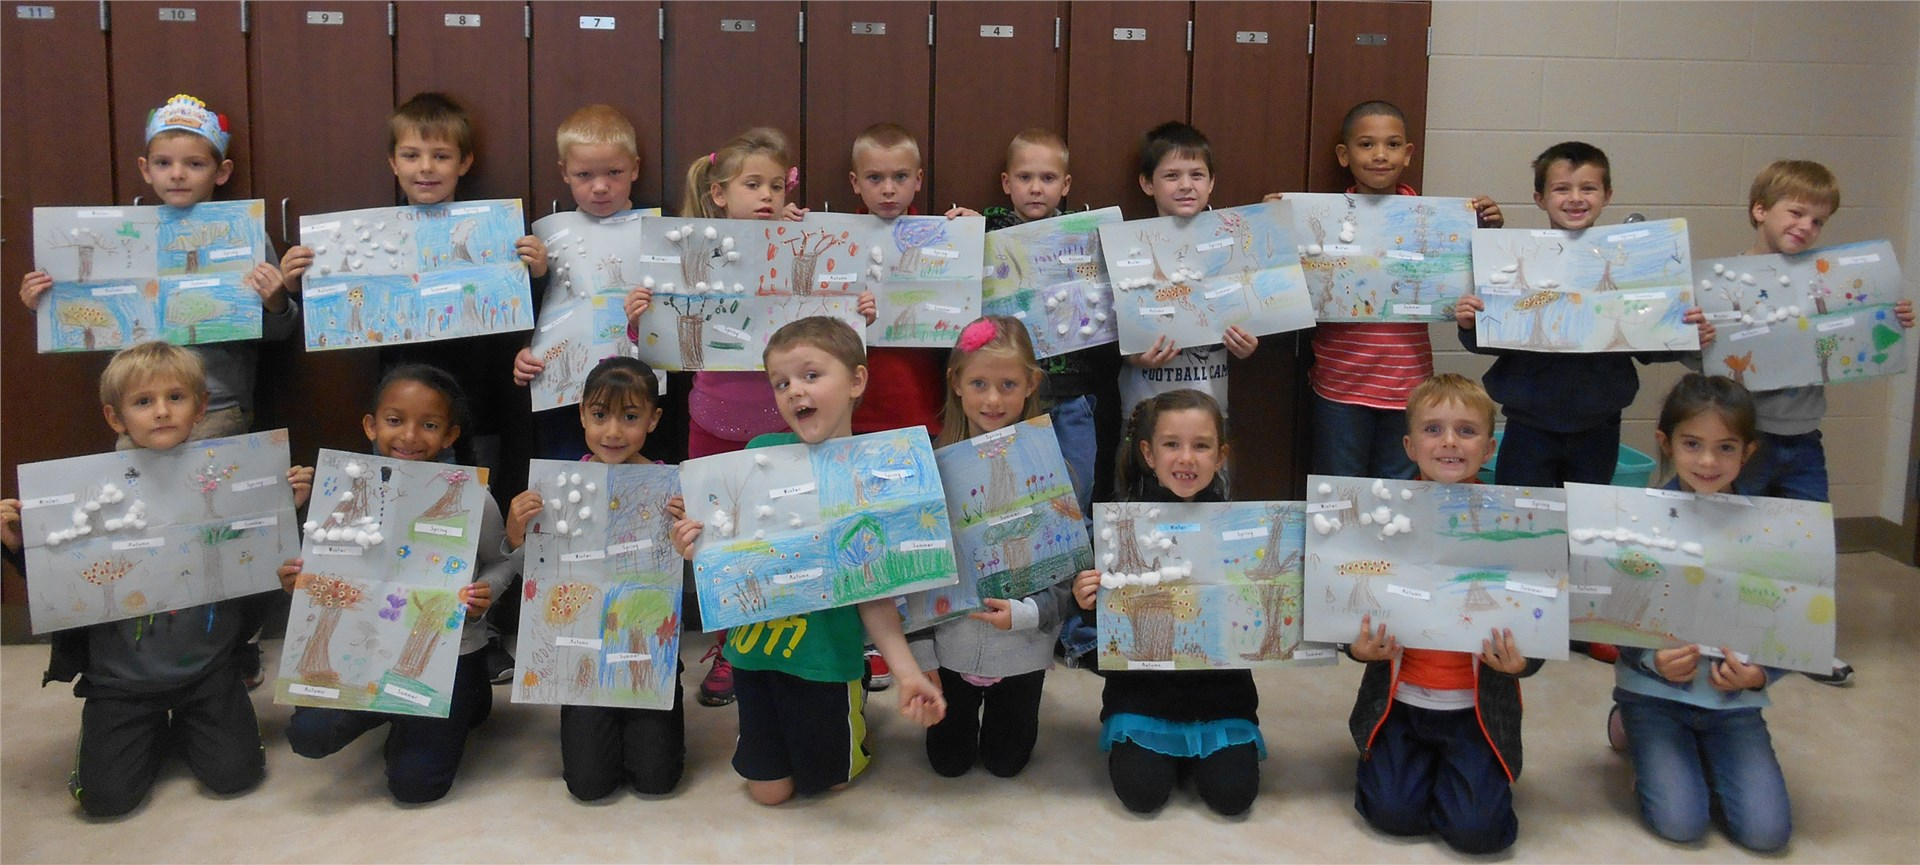 Students displaying artwork